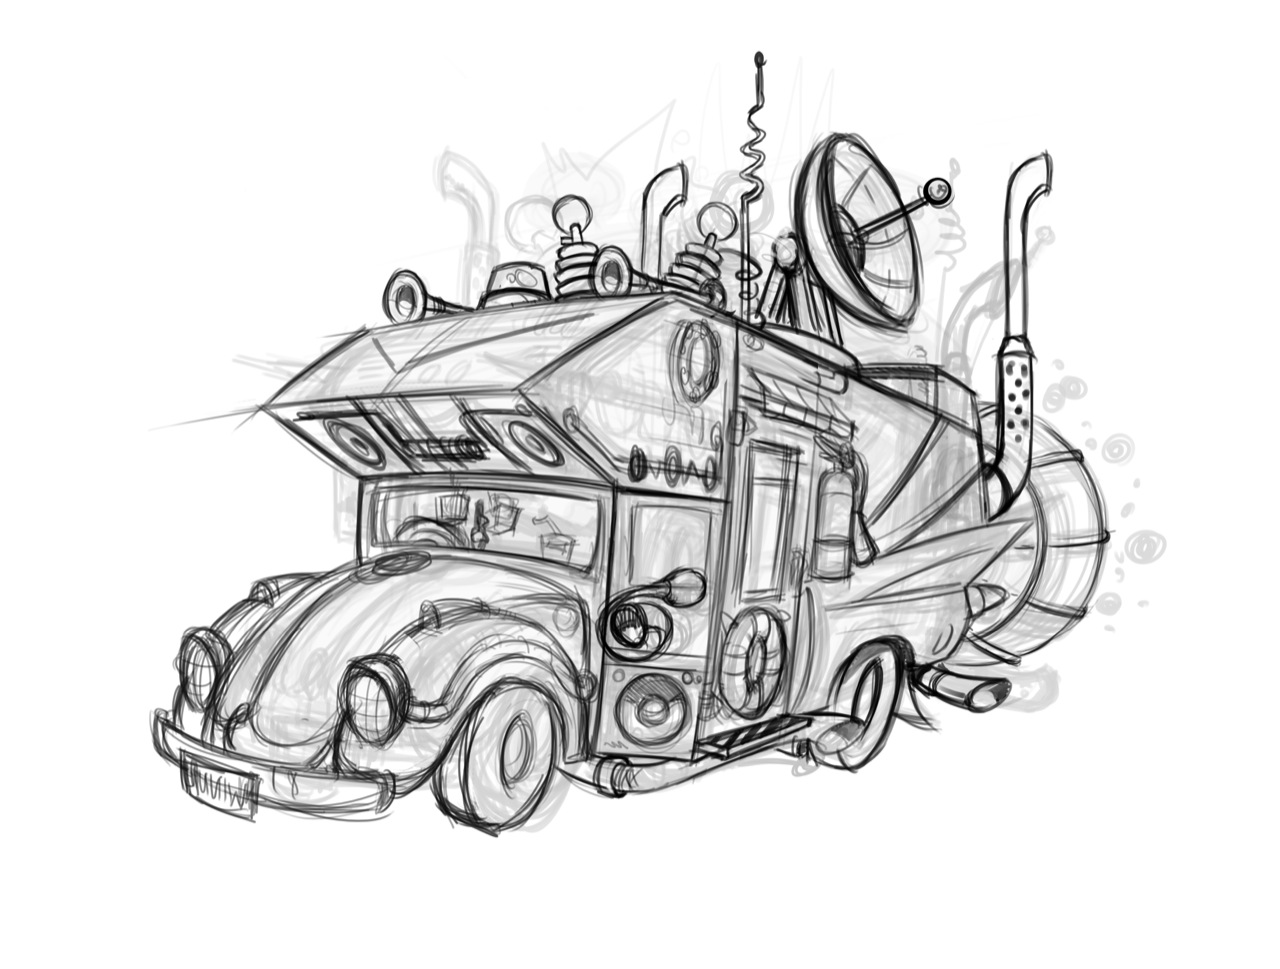 Image - Concept 4.jpg - Plants vs. Zombies Wiki, the free ...